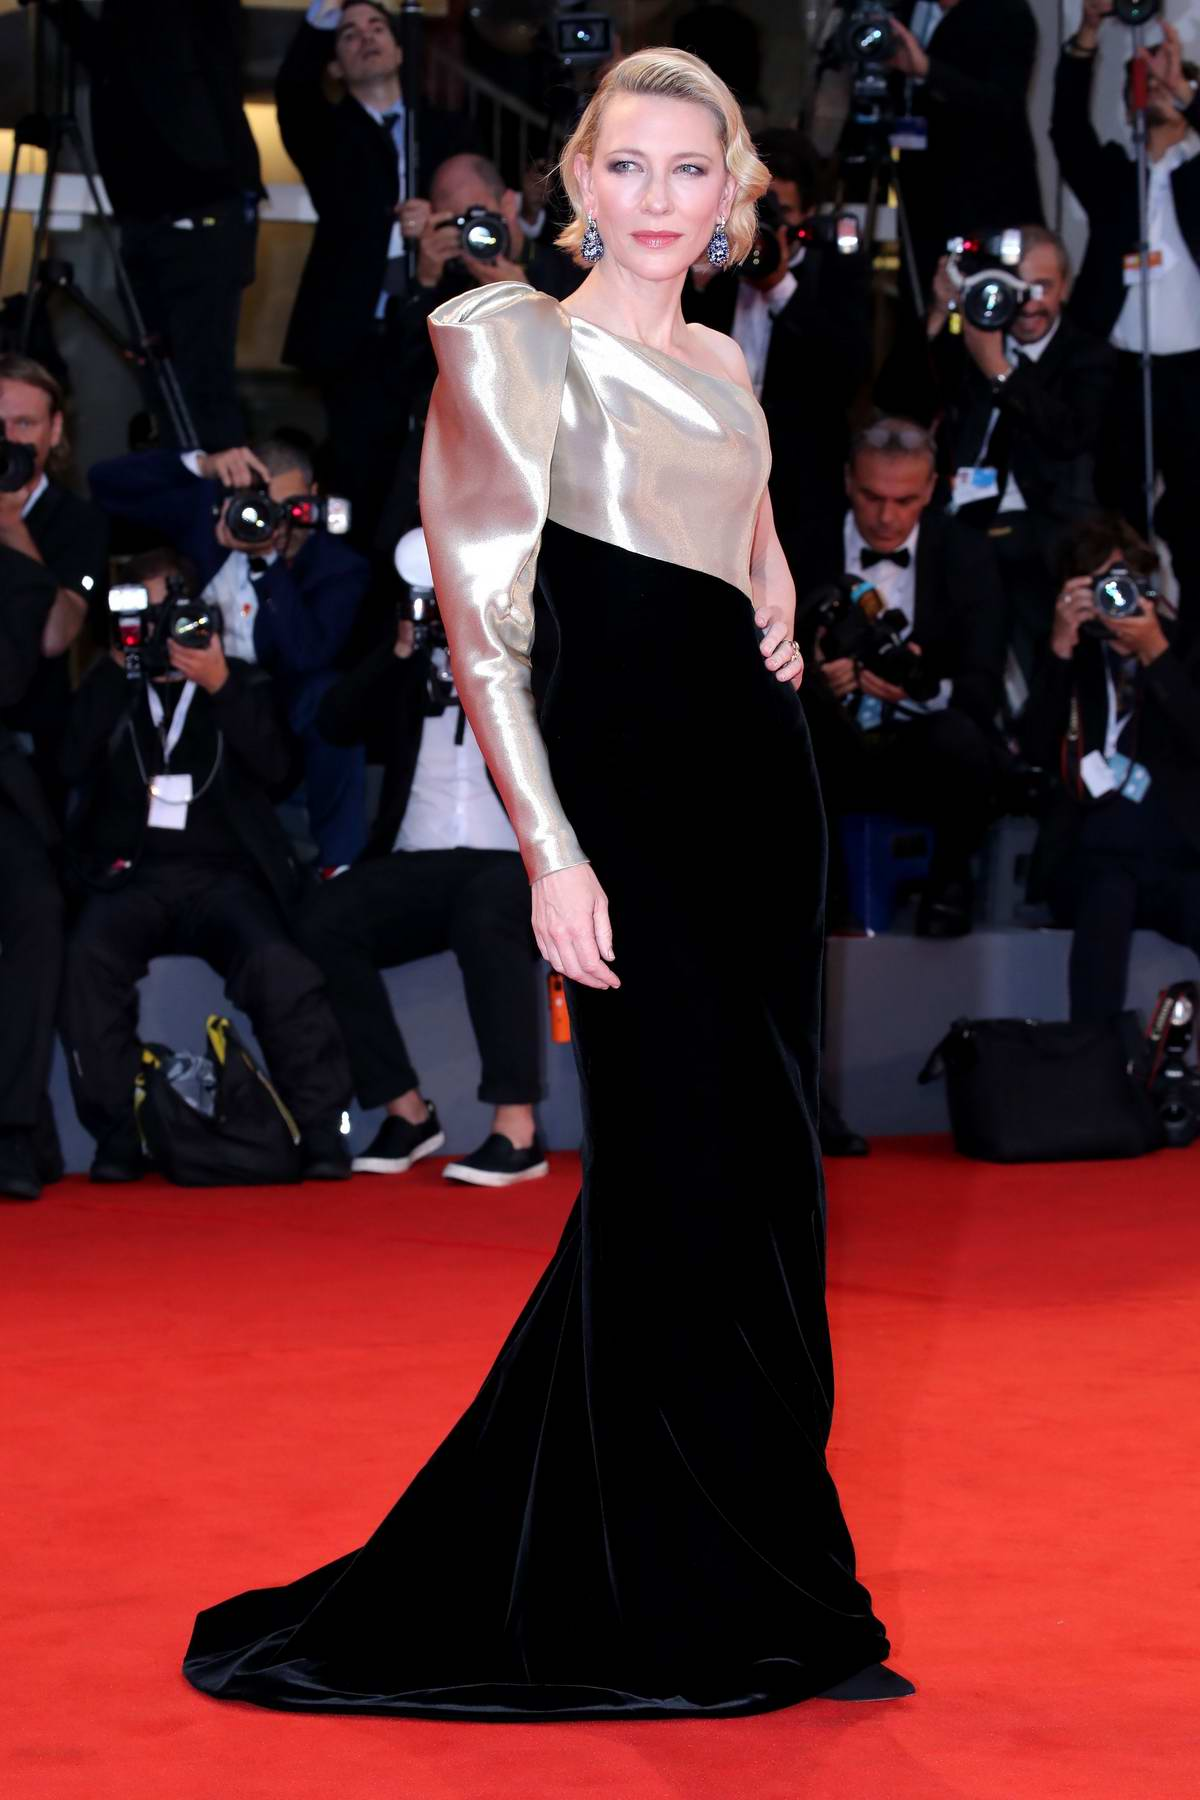 Cate Blanchett attends 'Suspiria' premiere during 75th Venice Film Festival in Venice, Italy